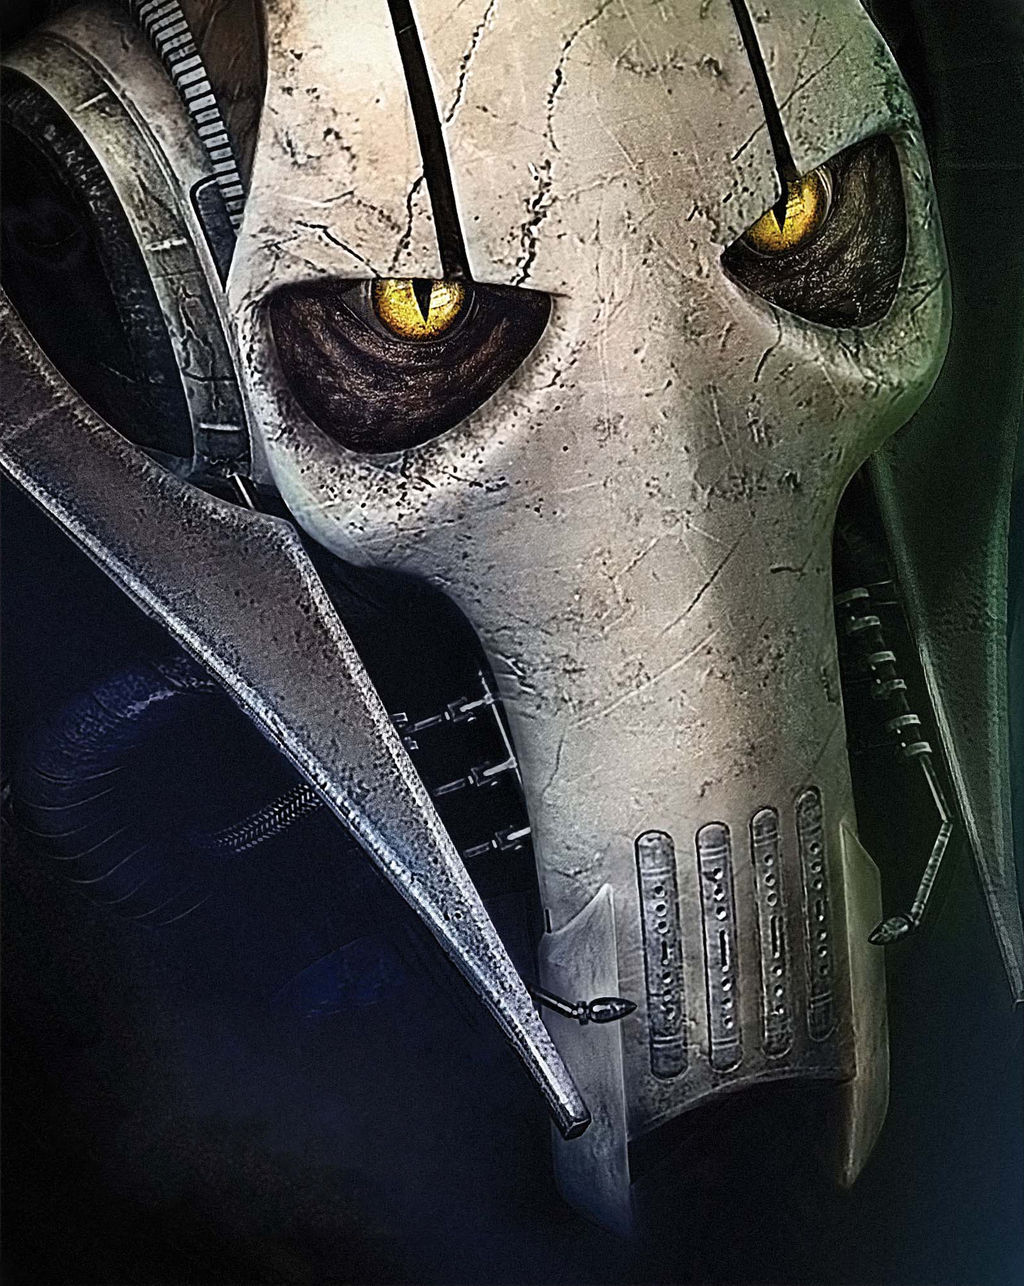 General Grievous For Revenge Of The Sith Textless By Mintmovi3 On Deviantart